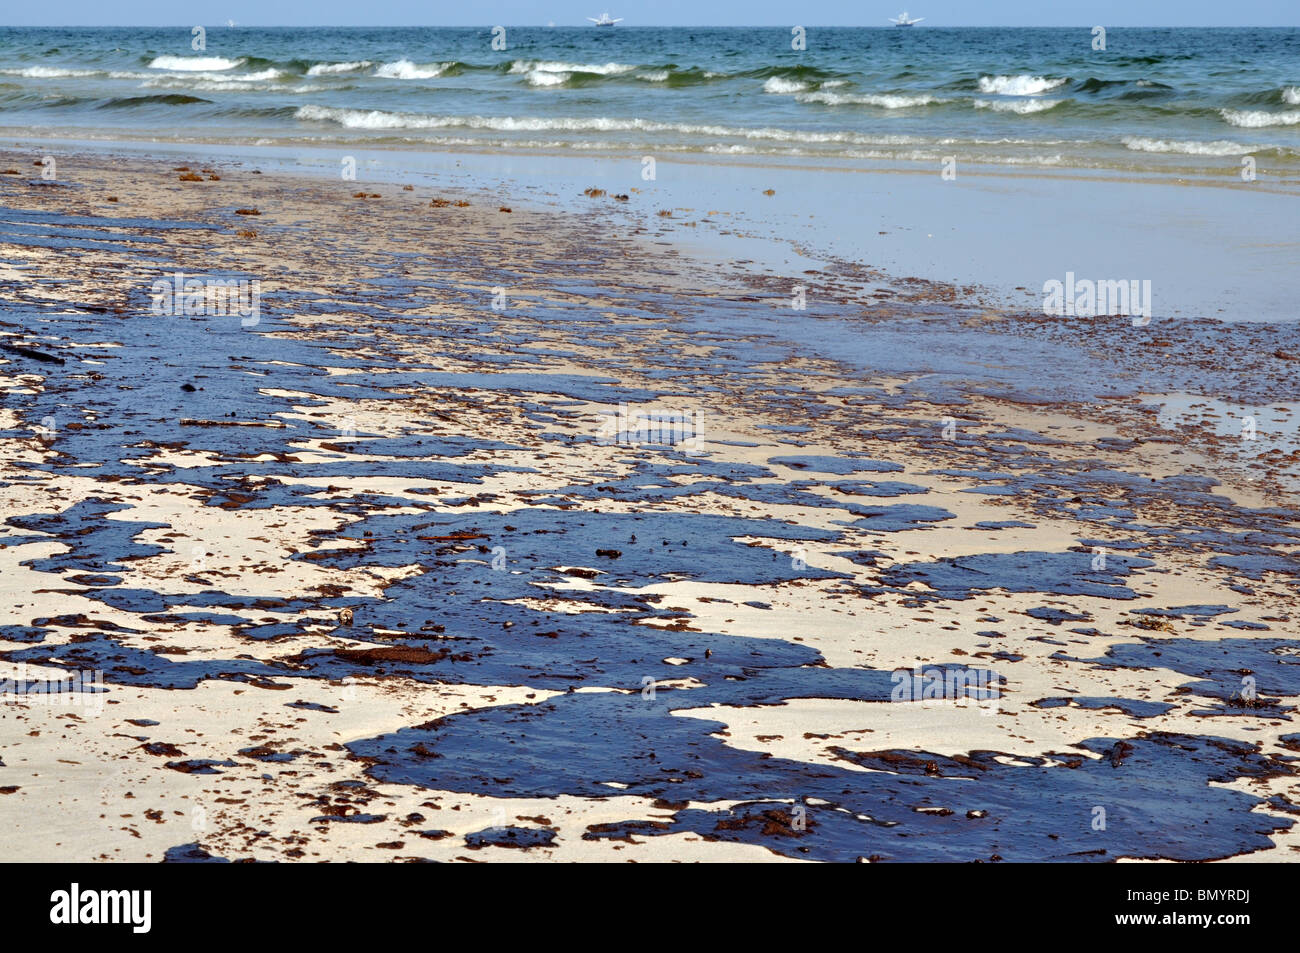 Oil spill on beach with oil skimmers in background. - Stock Image